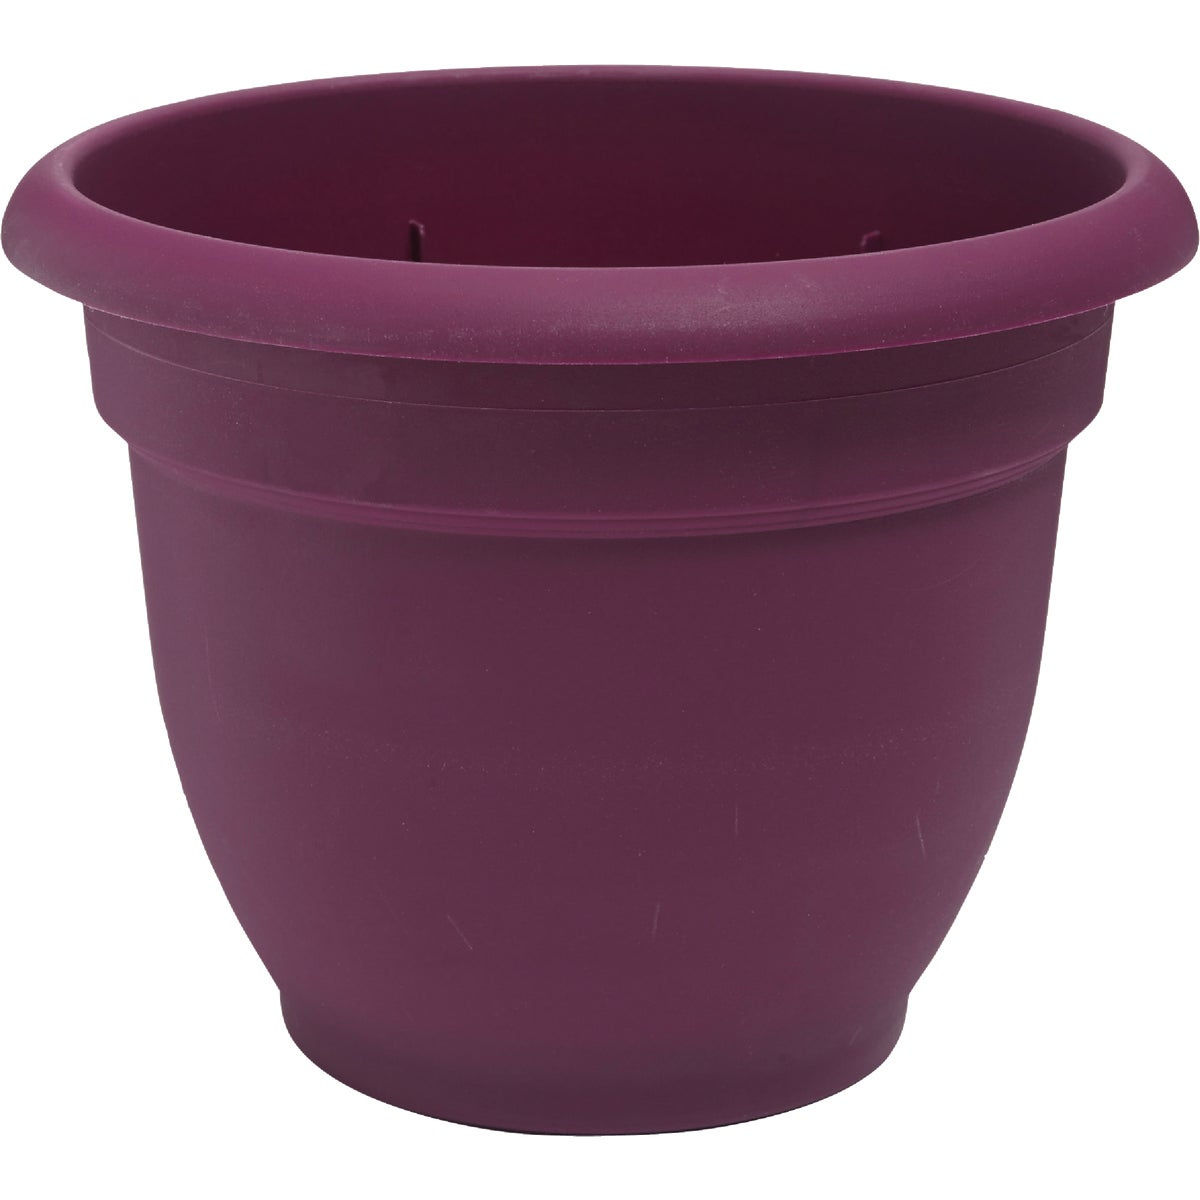 "10"" FUSIA ARIANA POT - 465103-1001 by Fiskars Brands Inc"